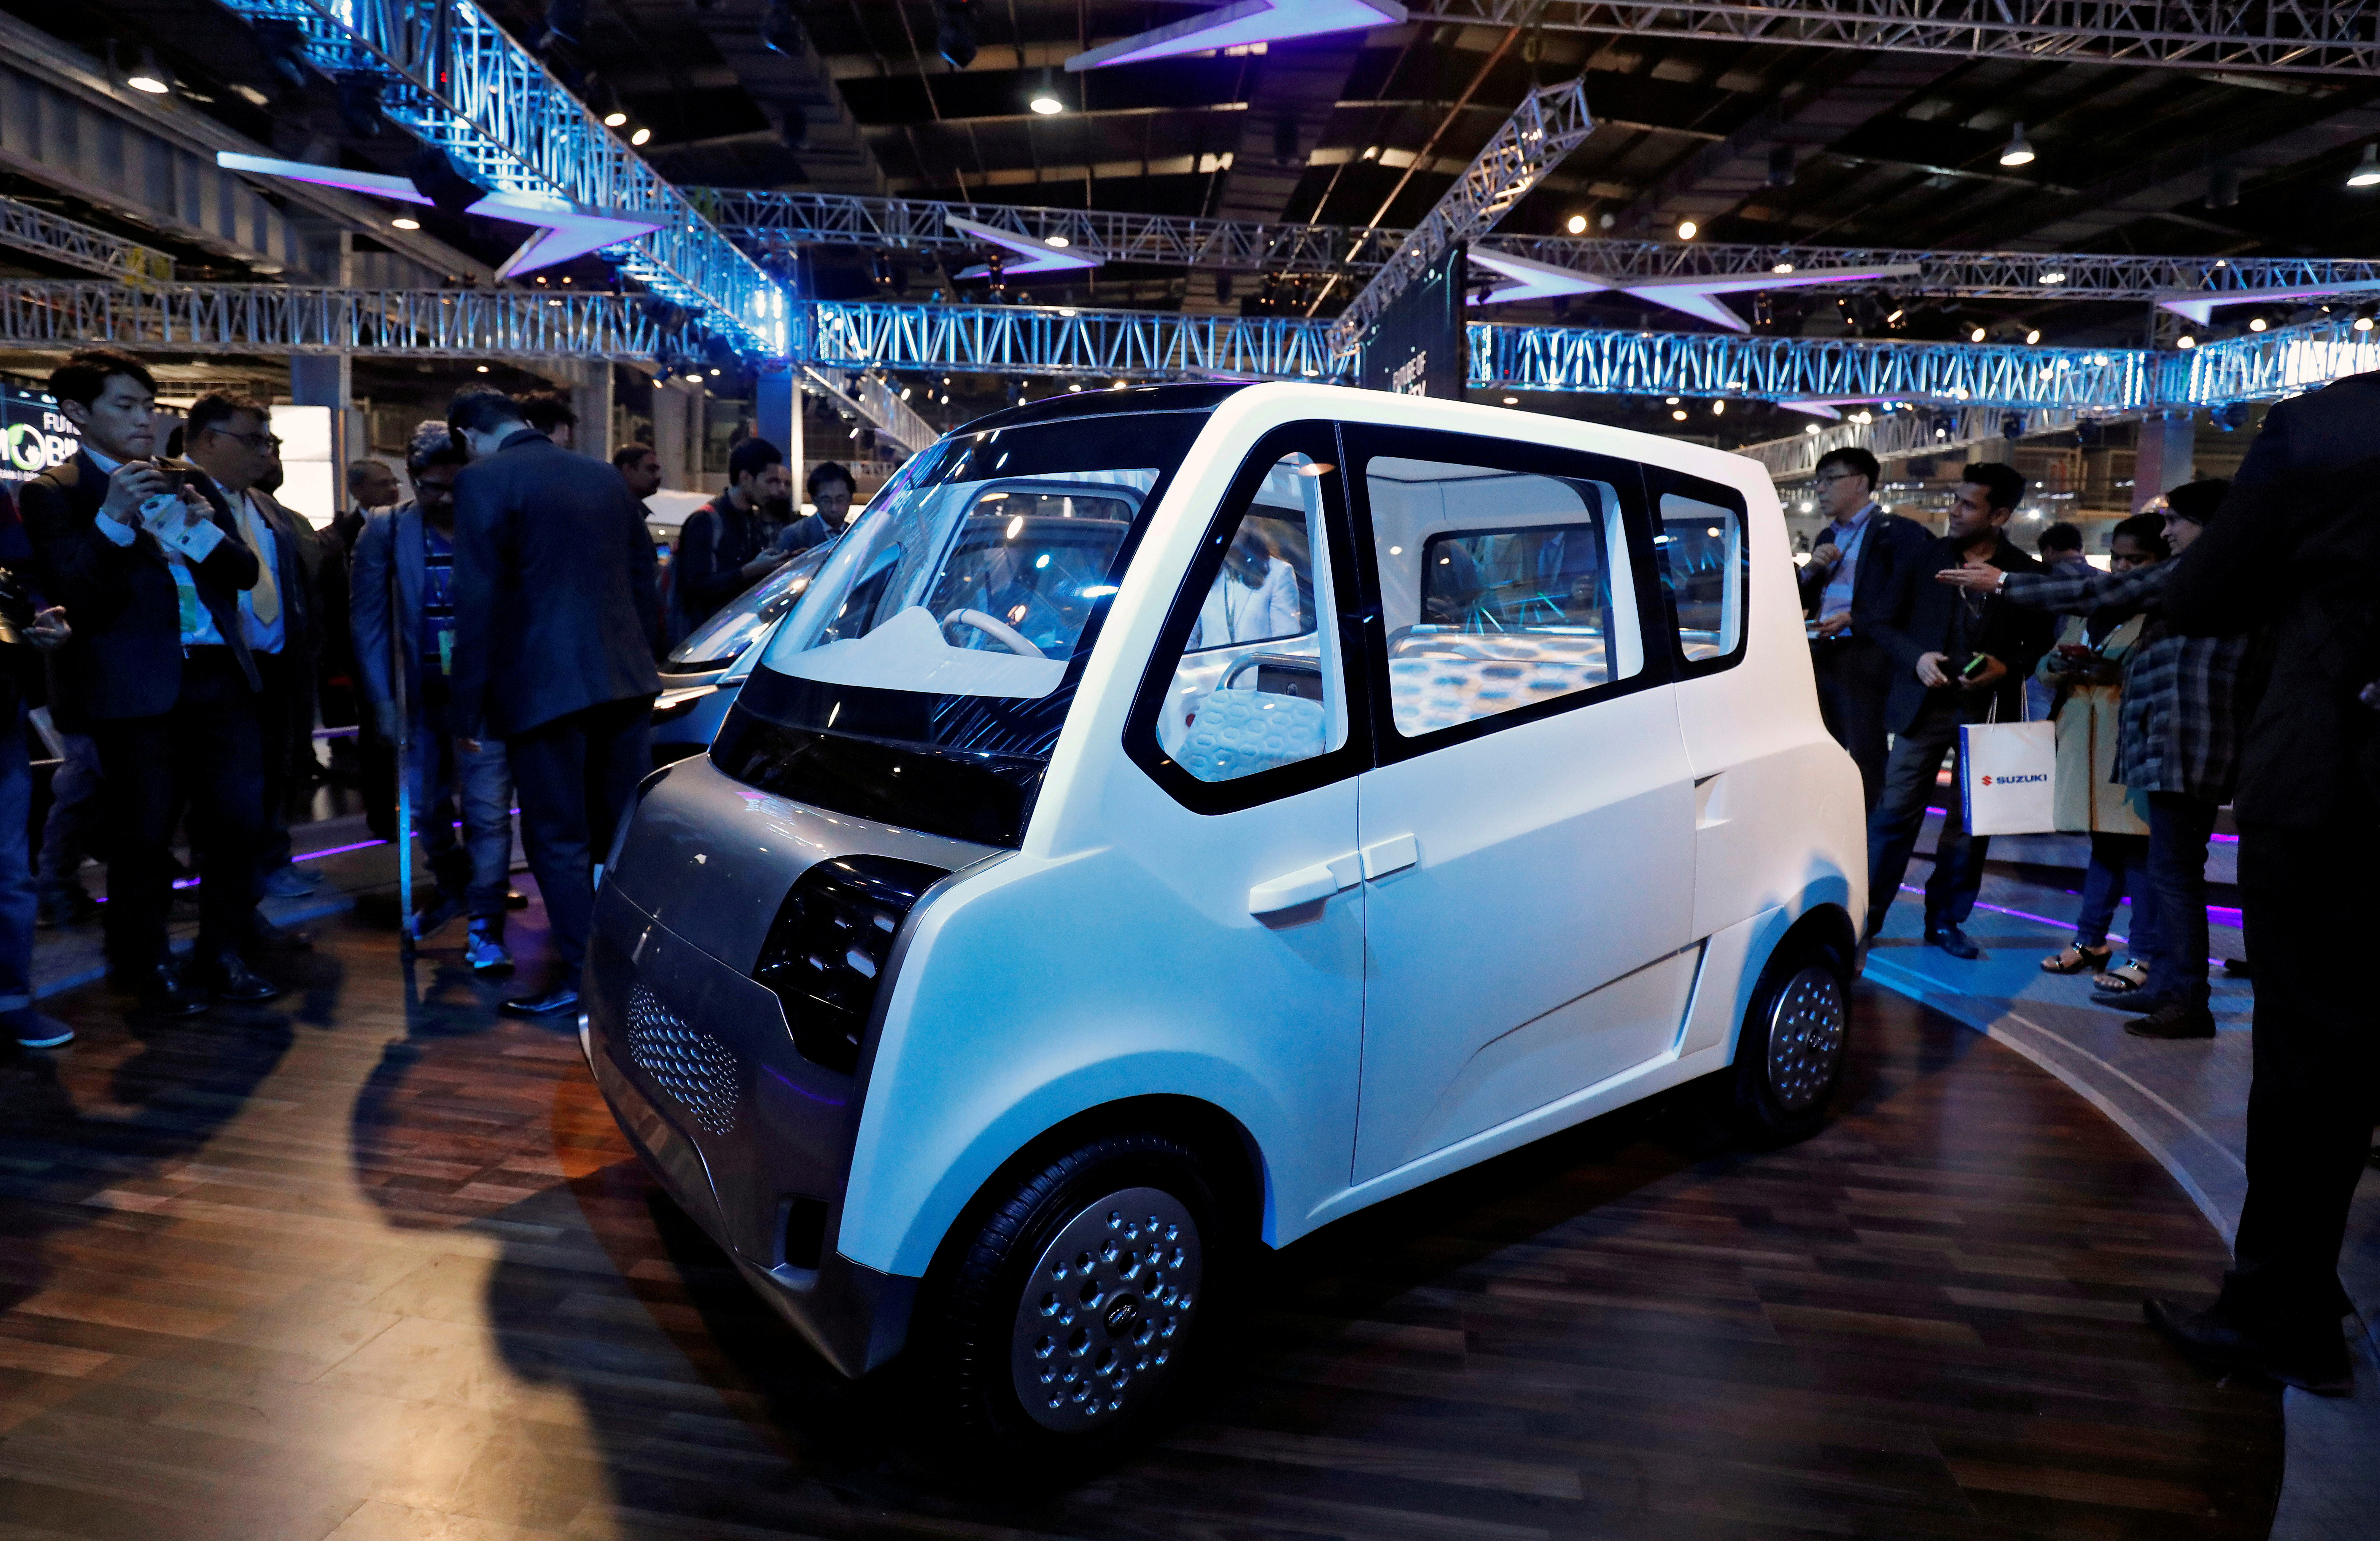 Mahindra showcases its new electric vehicle, ATOM, at the India Auto Show in Greater Noida, India, February 7, 2018. REUTERS/Saumya Khandelwal